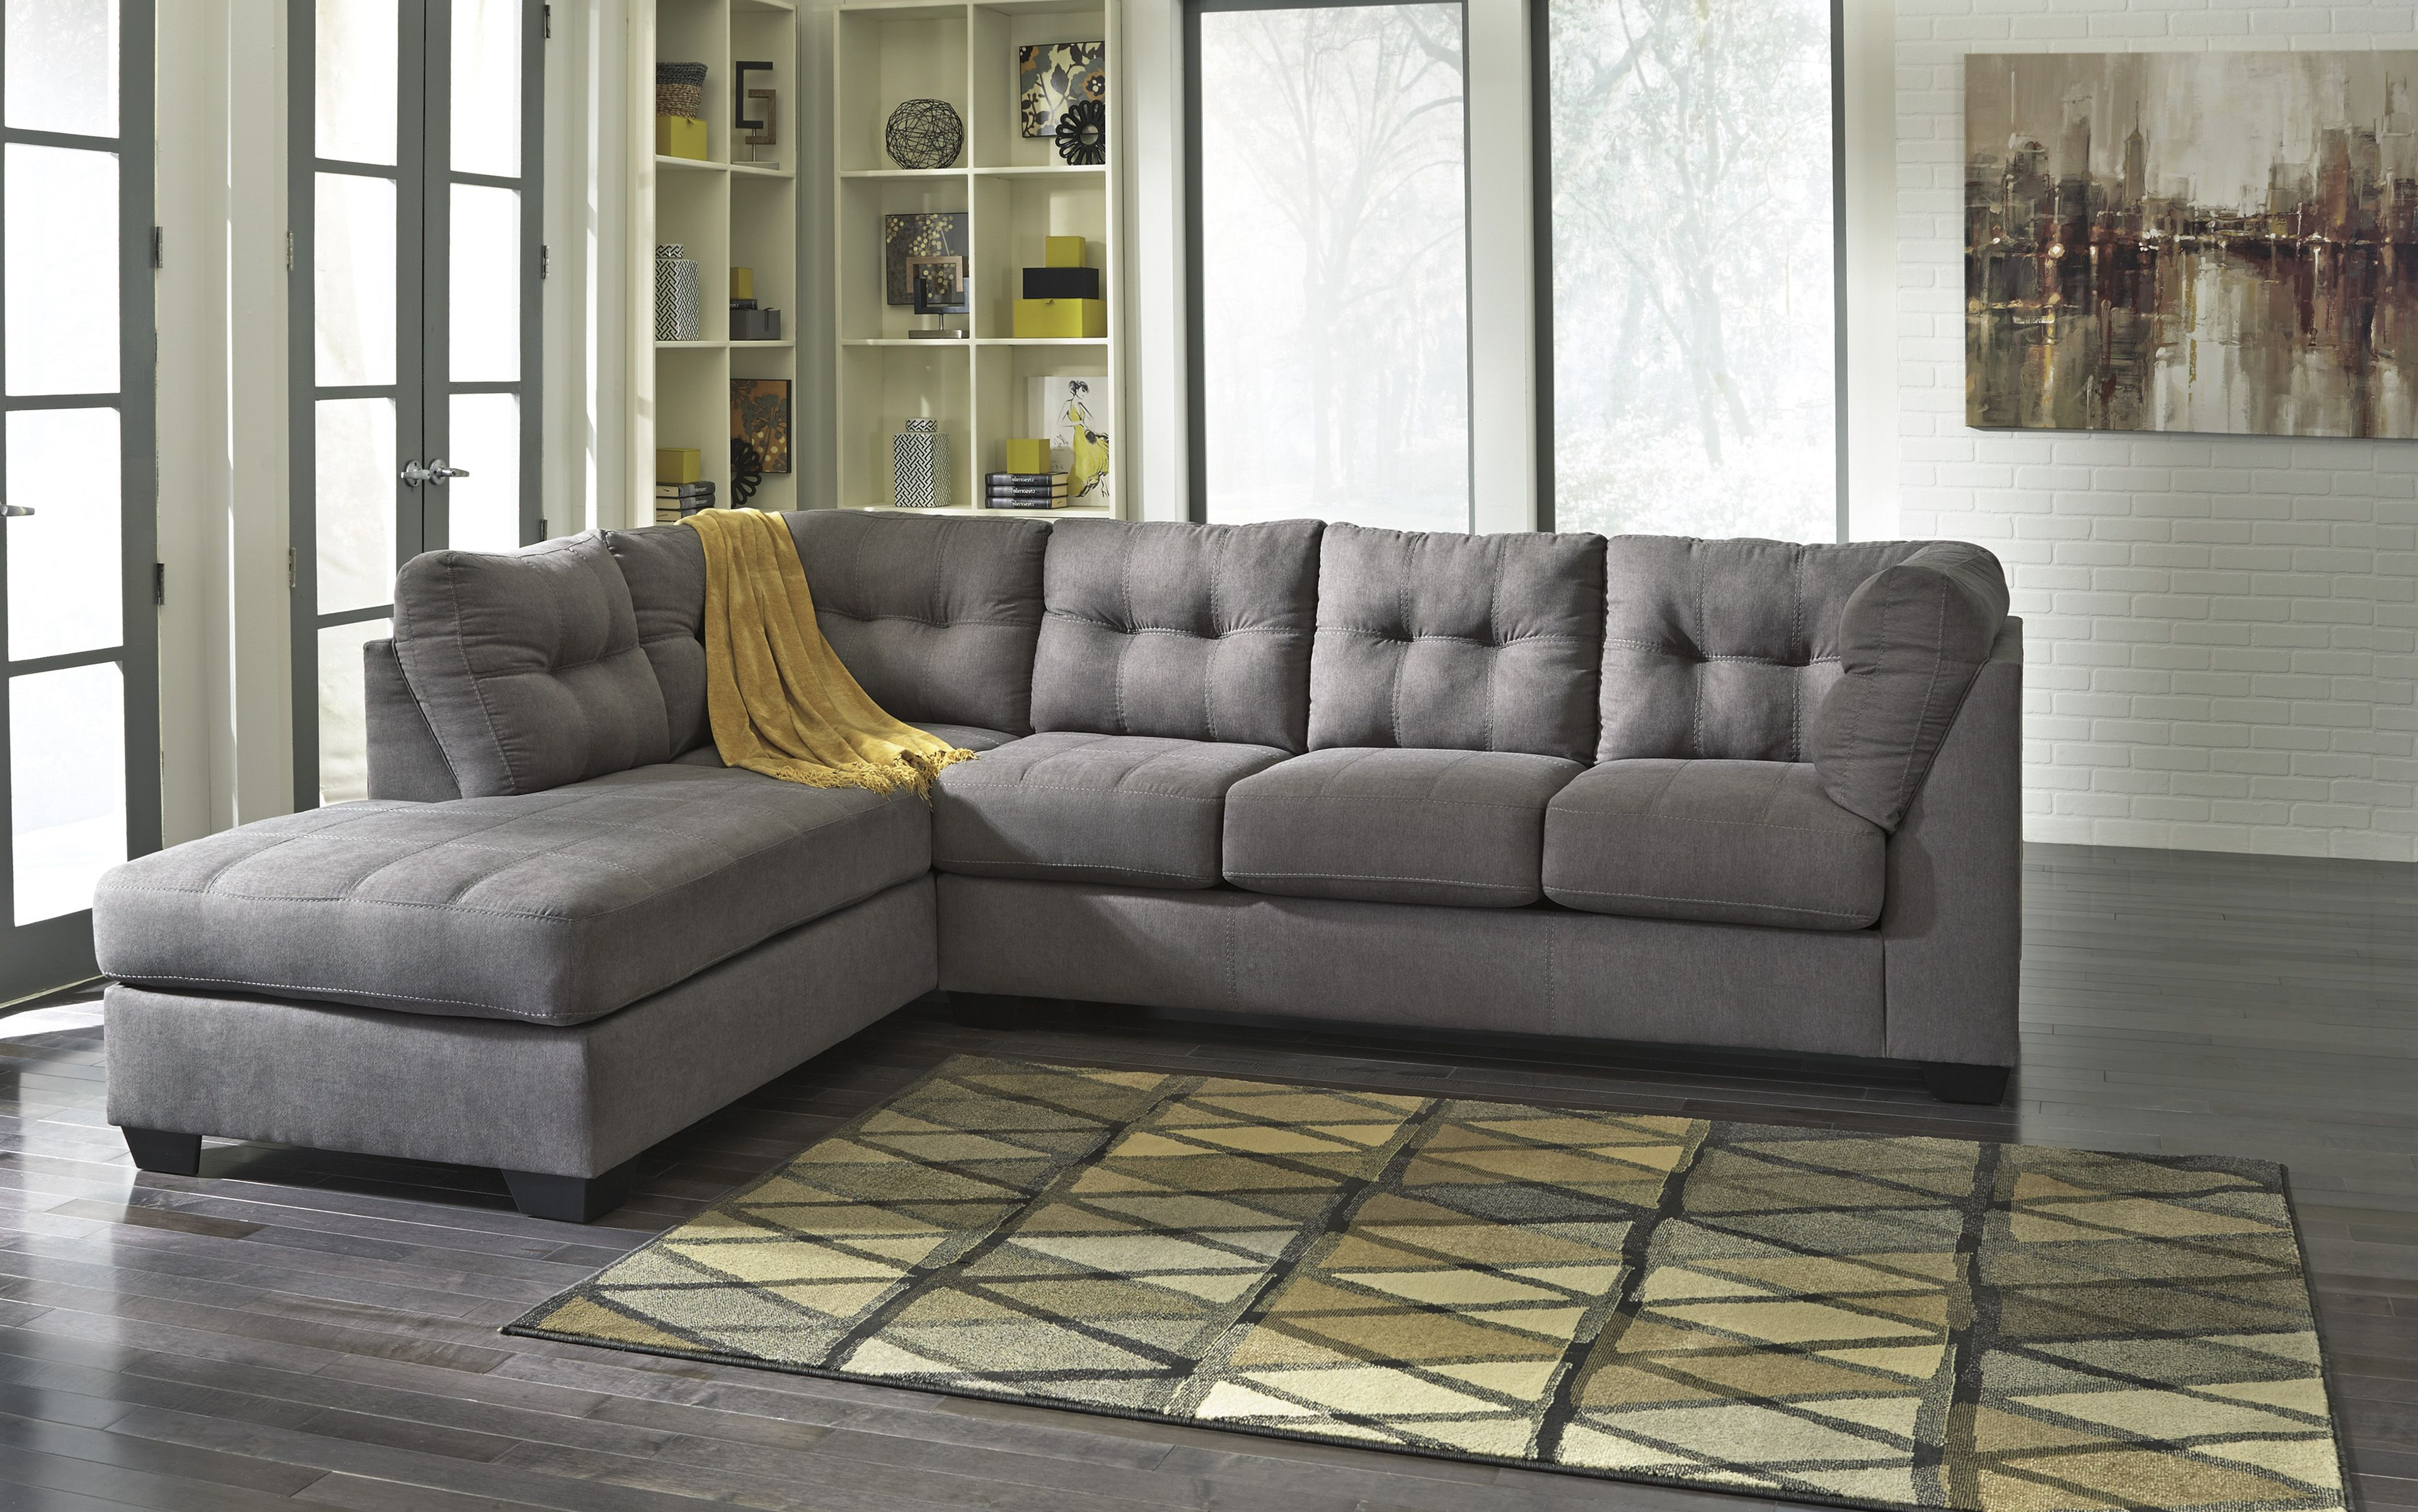 iec chaise energycrops sofa with loveseat sleeper leather modern fancy